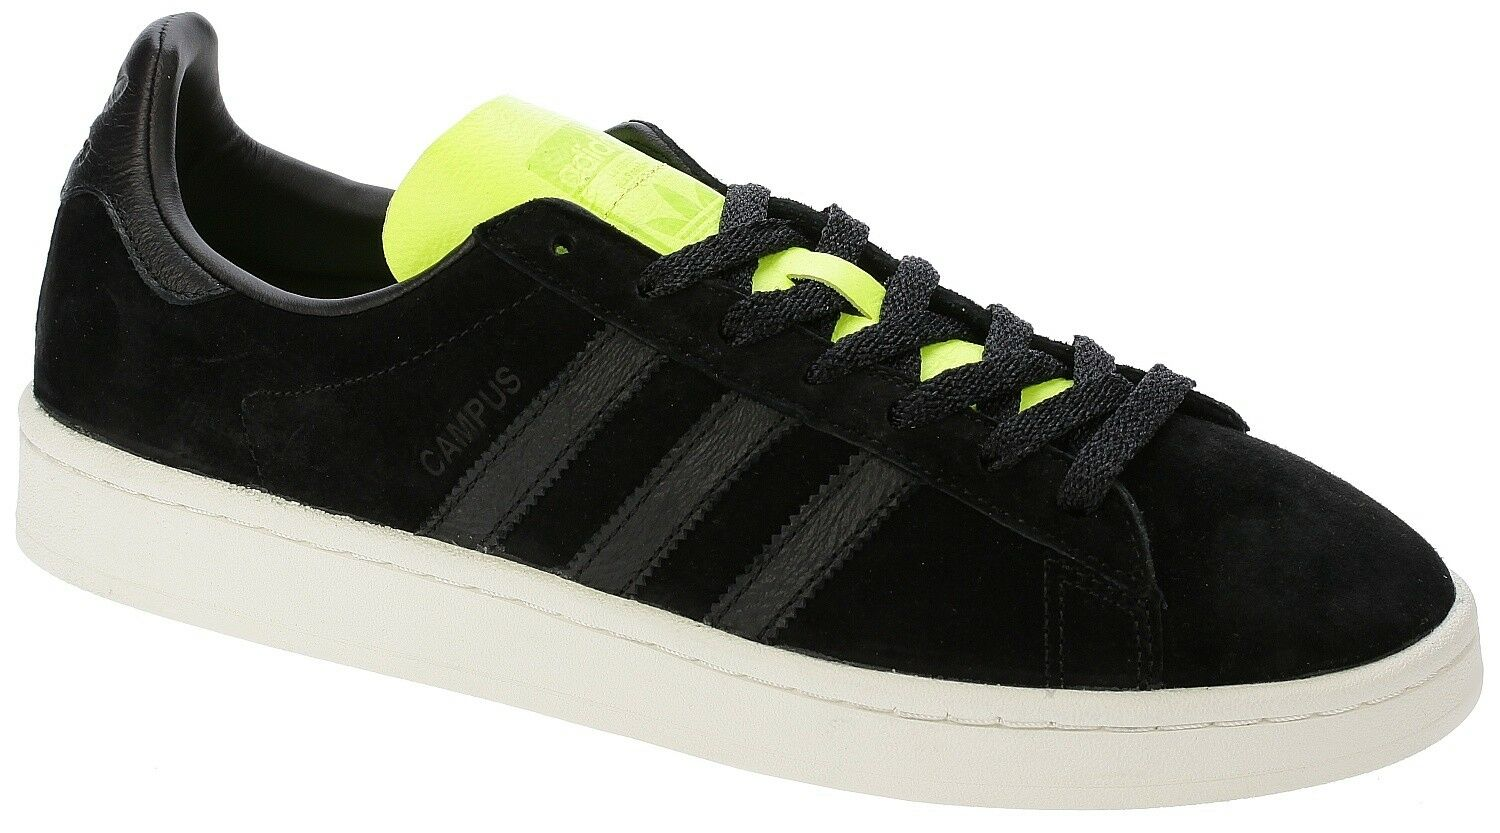 *BRAND NEW* adidas Originals Campus Sneakers, BLK / YLLW (BB00882), Size 10.5 US